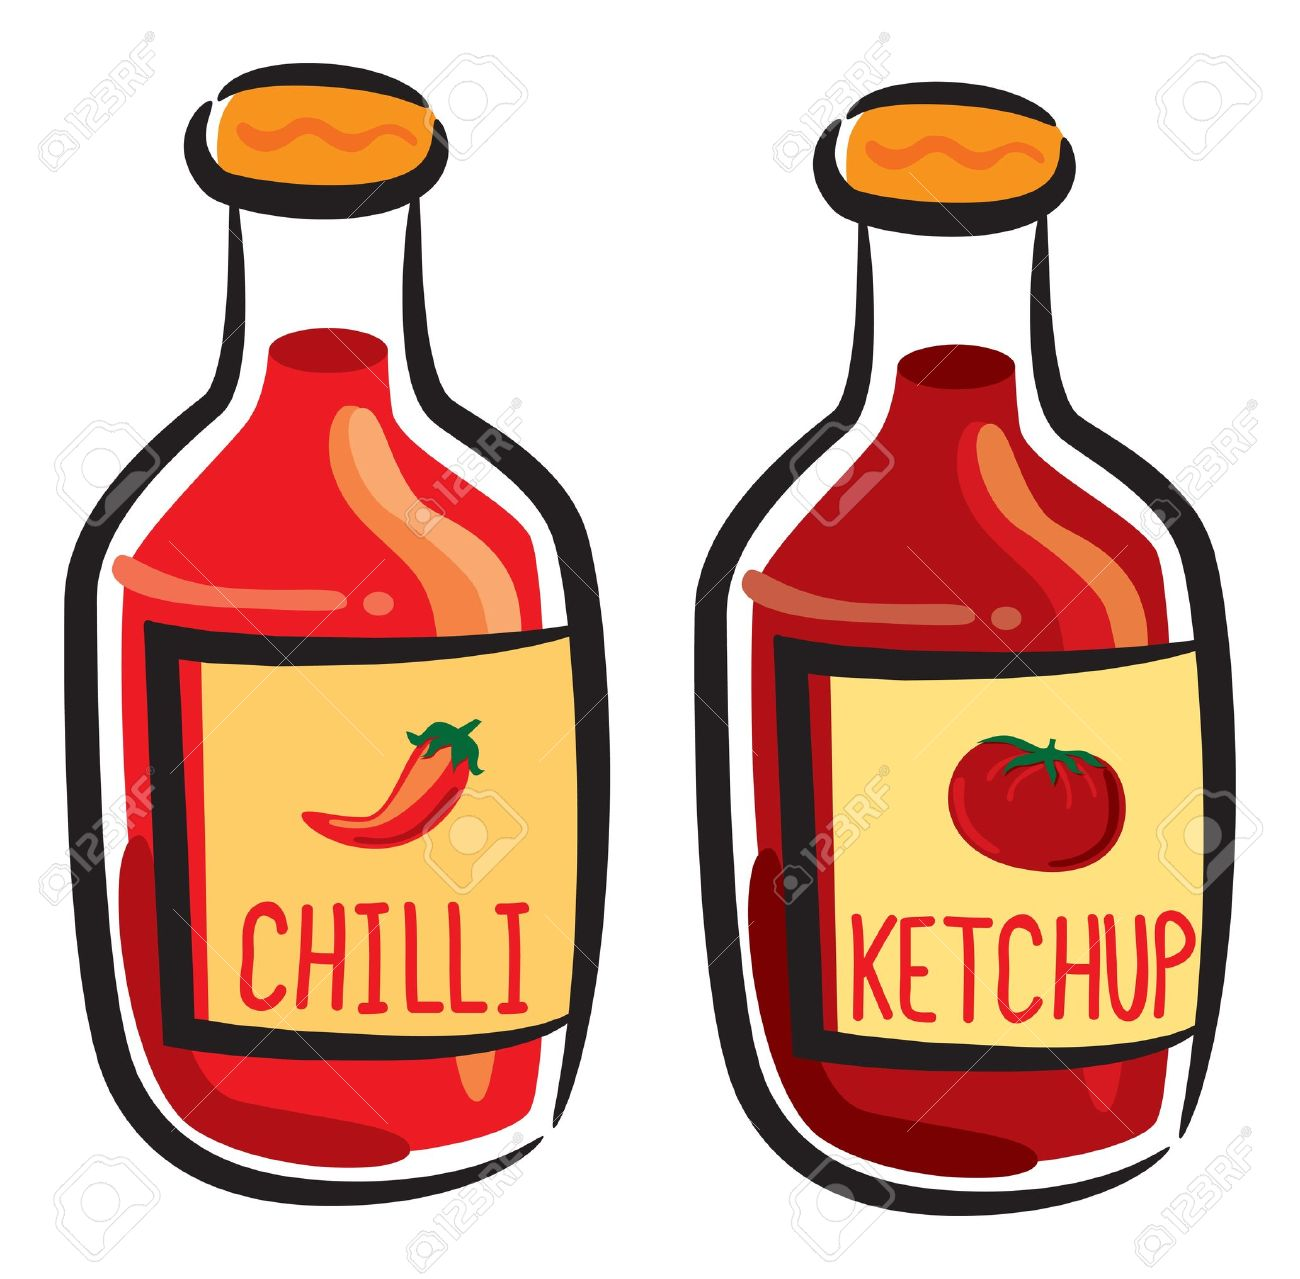 1,955 Ketchup Bottle Stock Illustrations, Cliparts And Royalty.